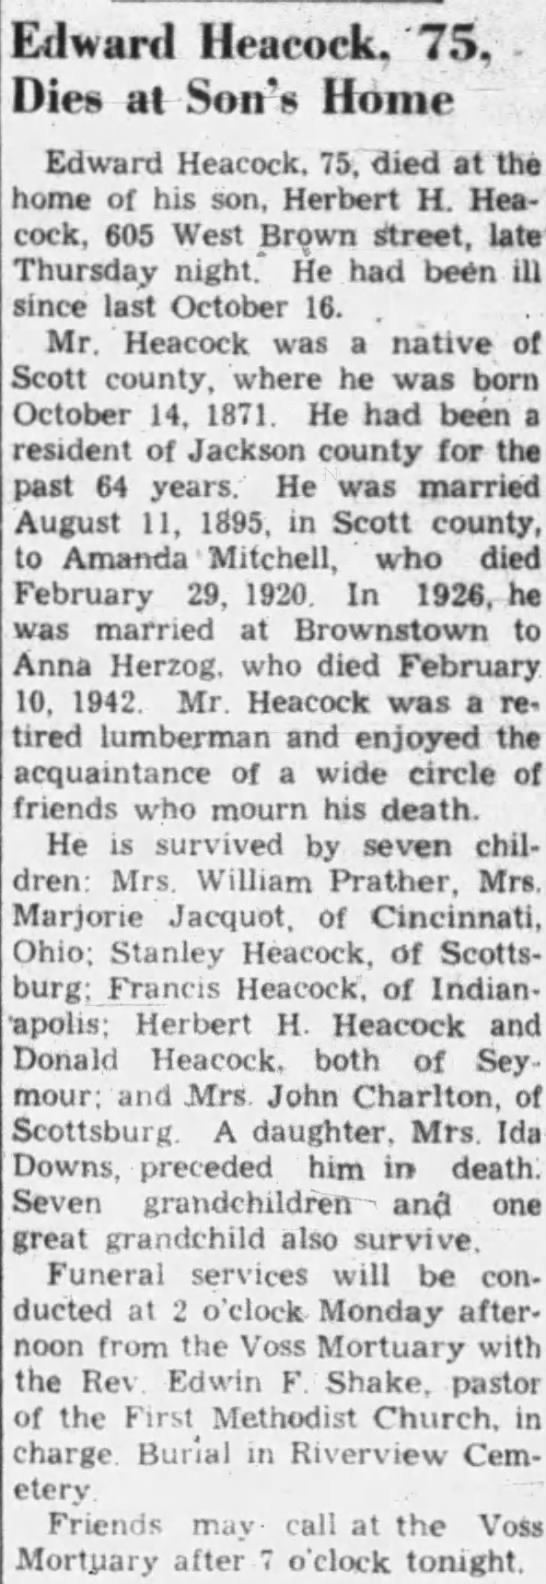 "Heacock, Edward The Tribune(Seymour, Indiana) 28 Feb 1947, Fri, Page 1 - Edward Heacock, '75, -Dies at Soirs Home ""..."